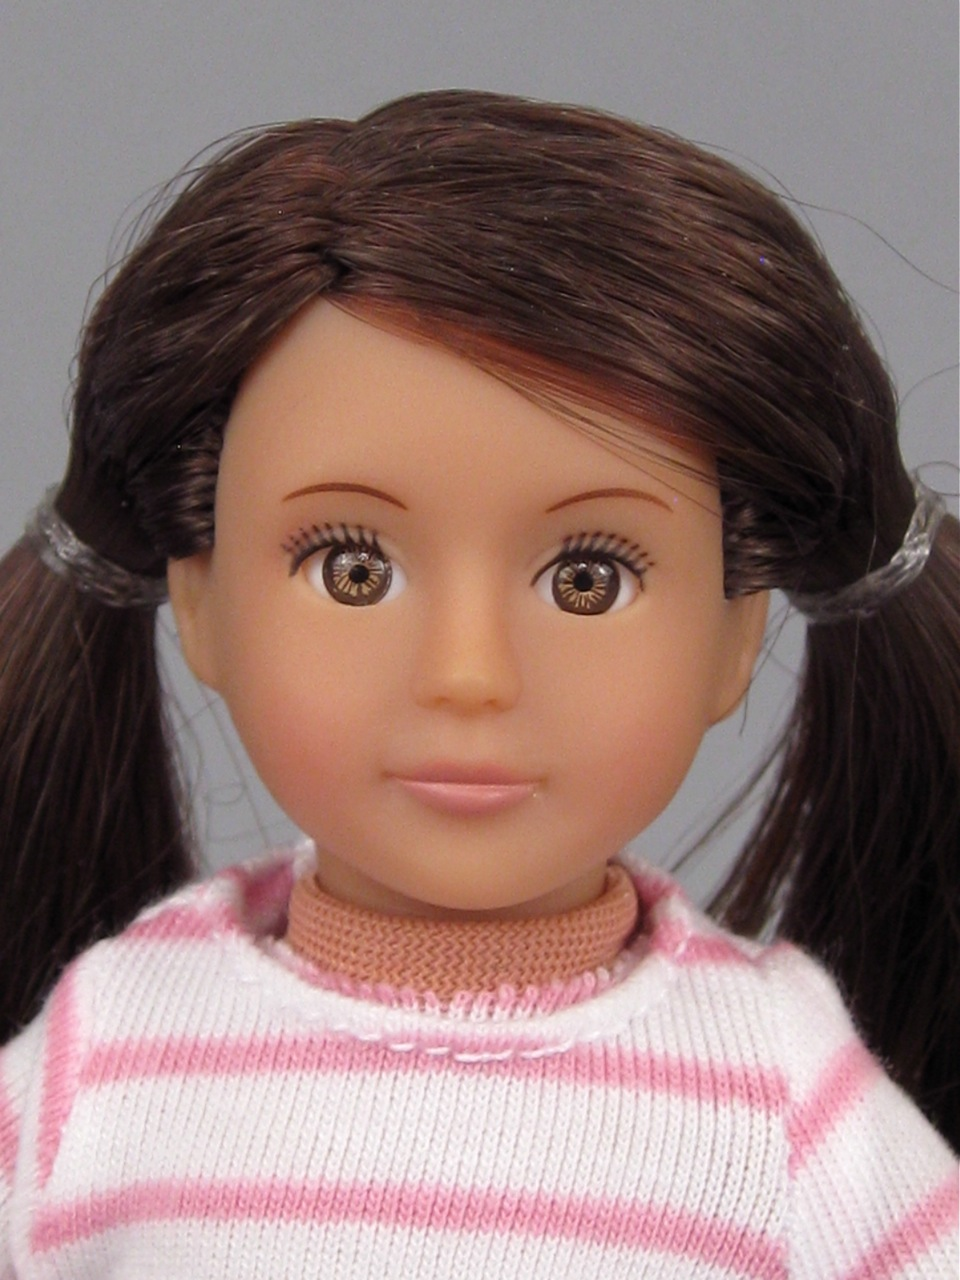 Our Generation mini doll Sienna